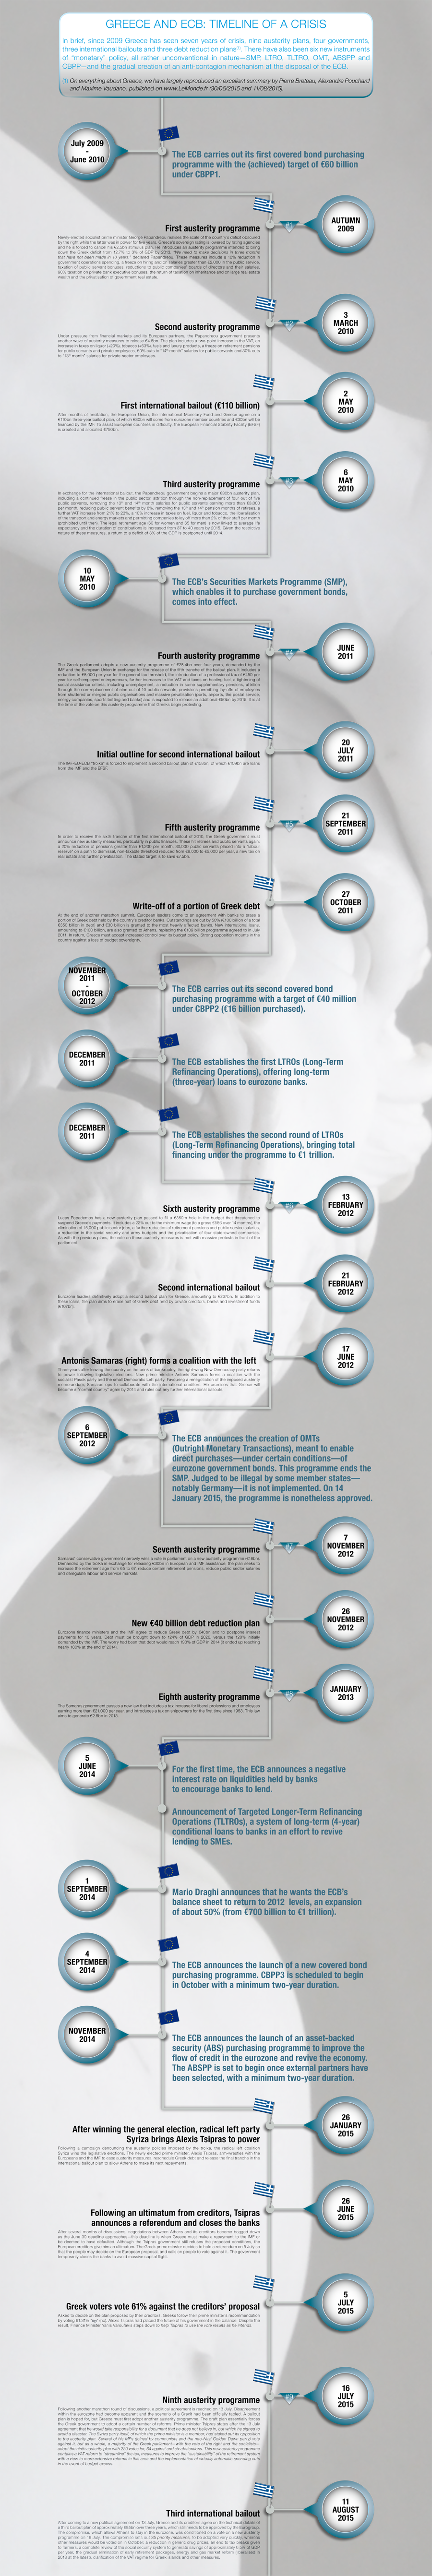 GREECE-AND-ECB_TIMELINE-OF-A-CRISIS